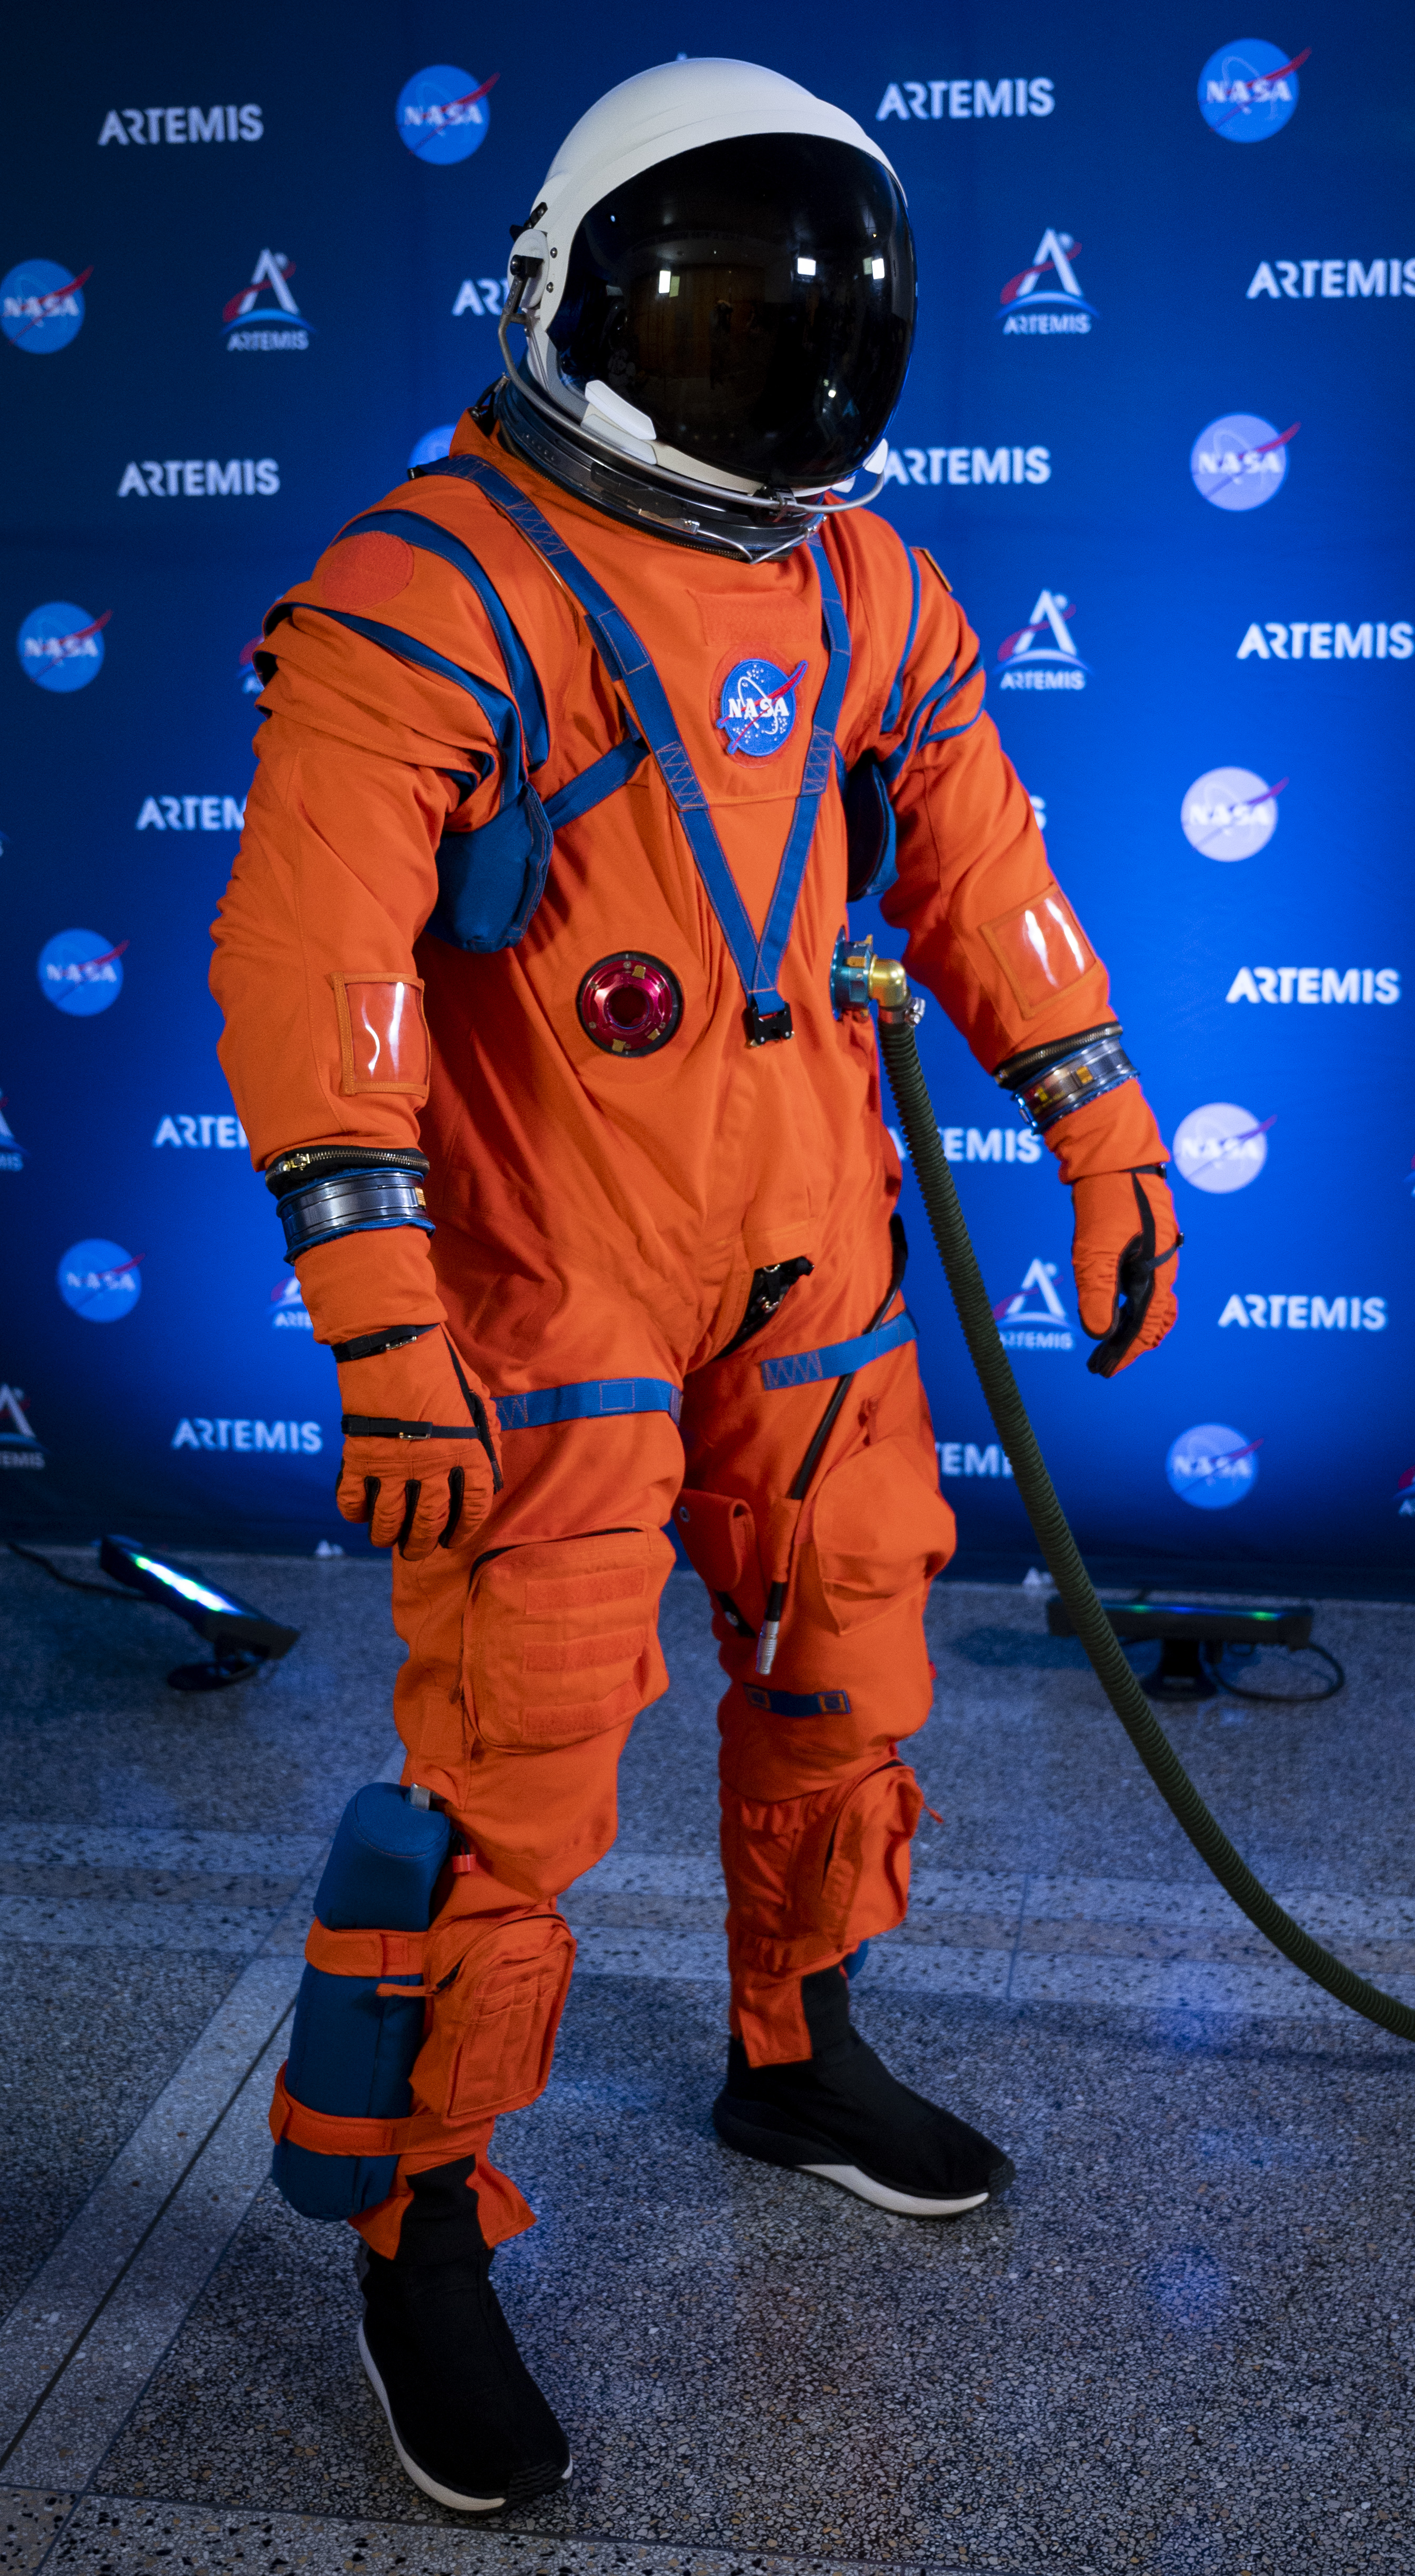 Orion Suit Equipped to Expect the Unexpected on Artemis